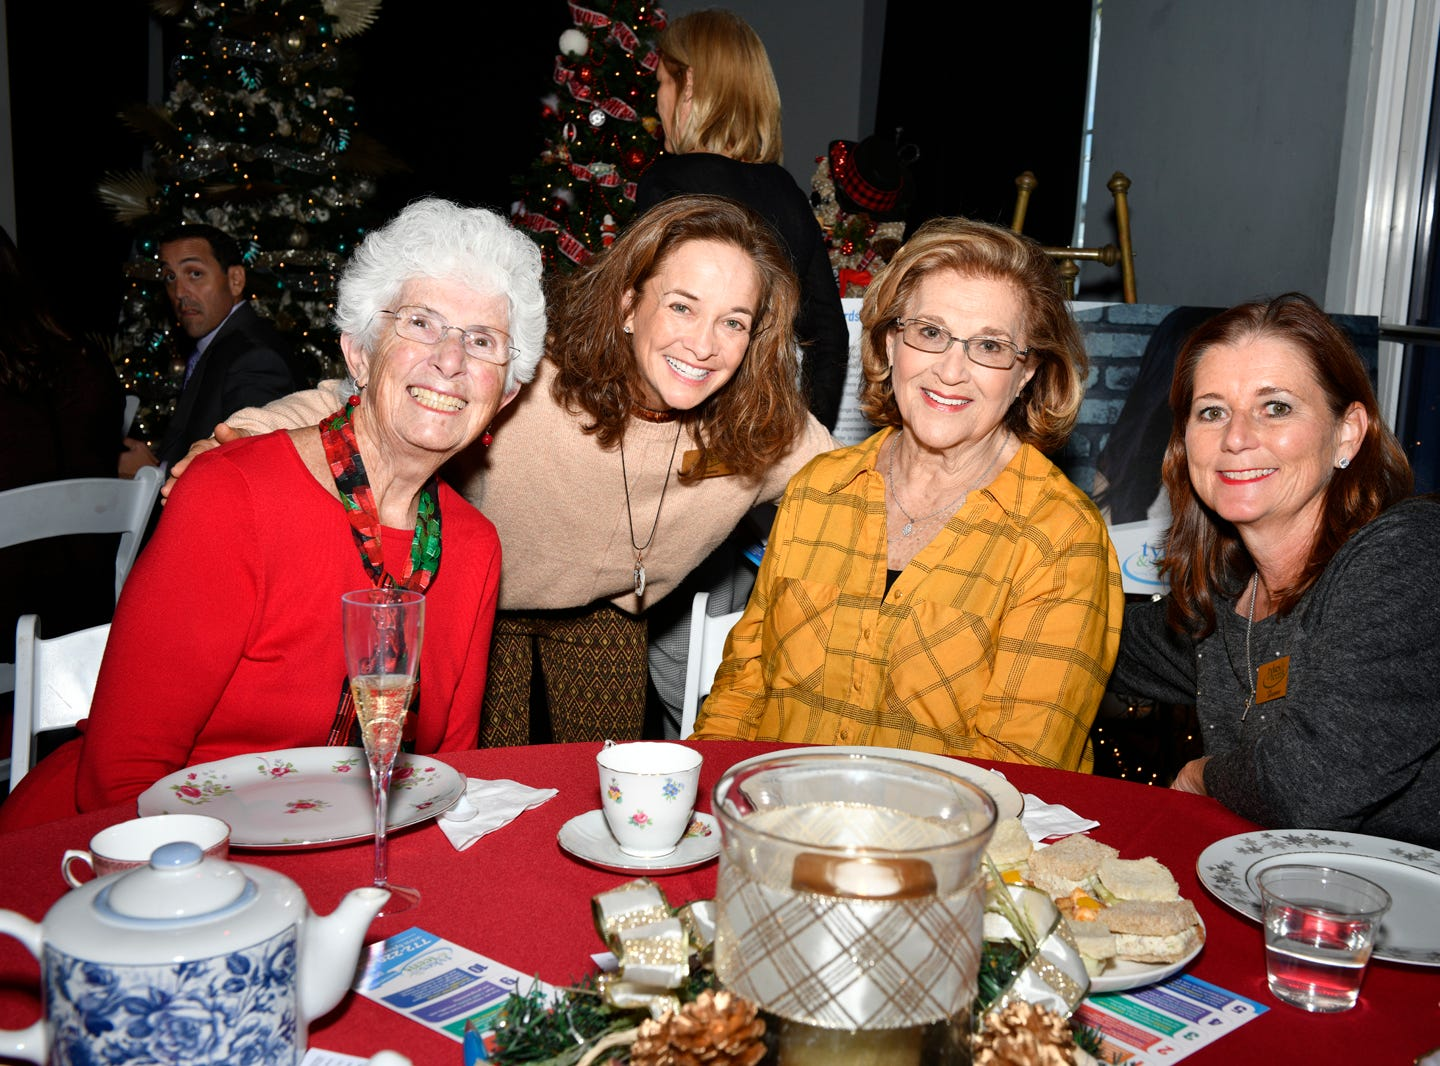 Jane Buss, left, Debbie Maunus, Nancy Marin and Sue Whittington at the Tykes & Teens Festival of Trees & Lights' Afternoon Champagne Tea.